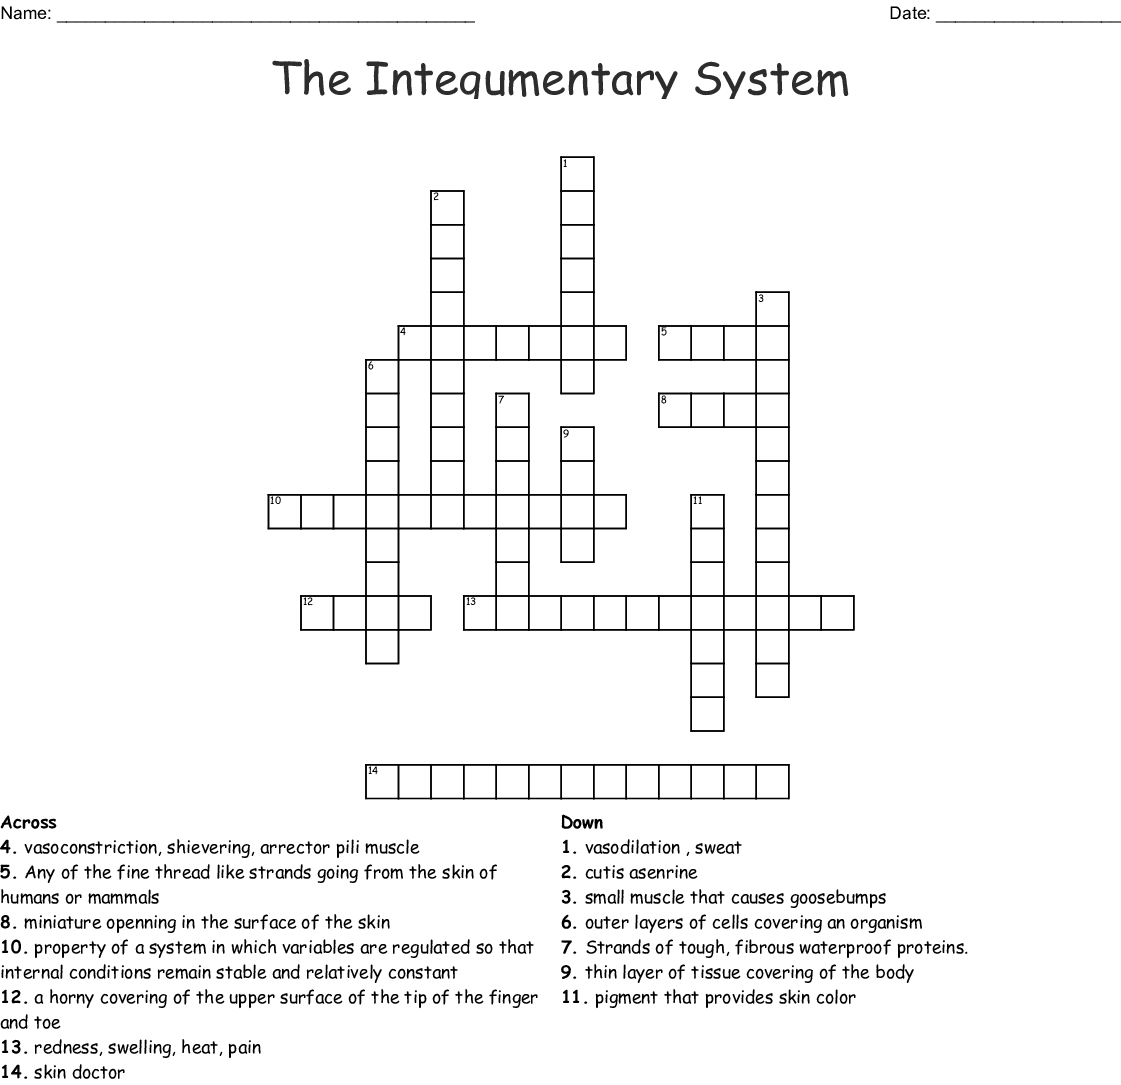 The Integumentary System Crossword